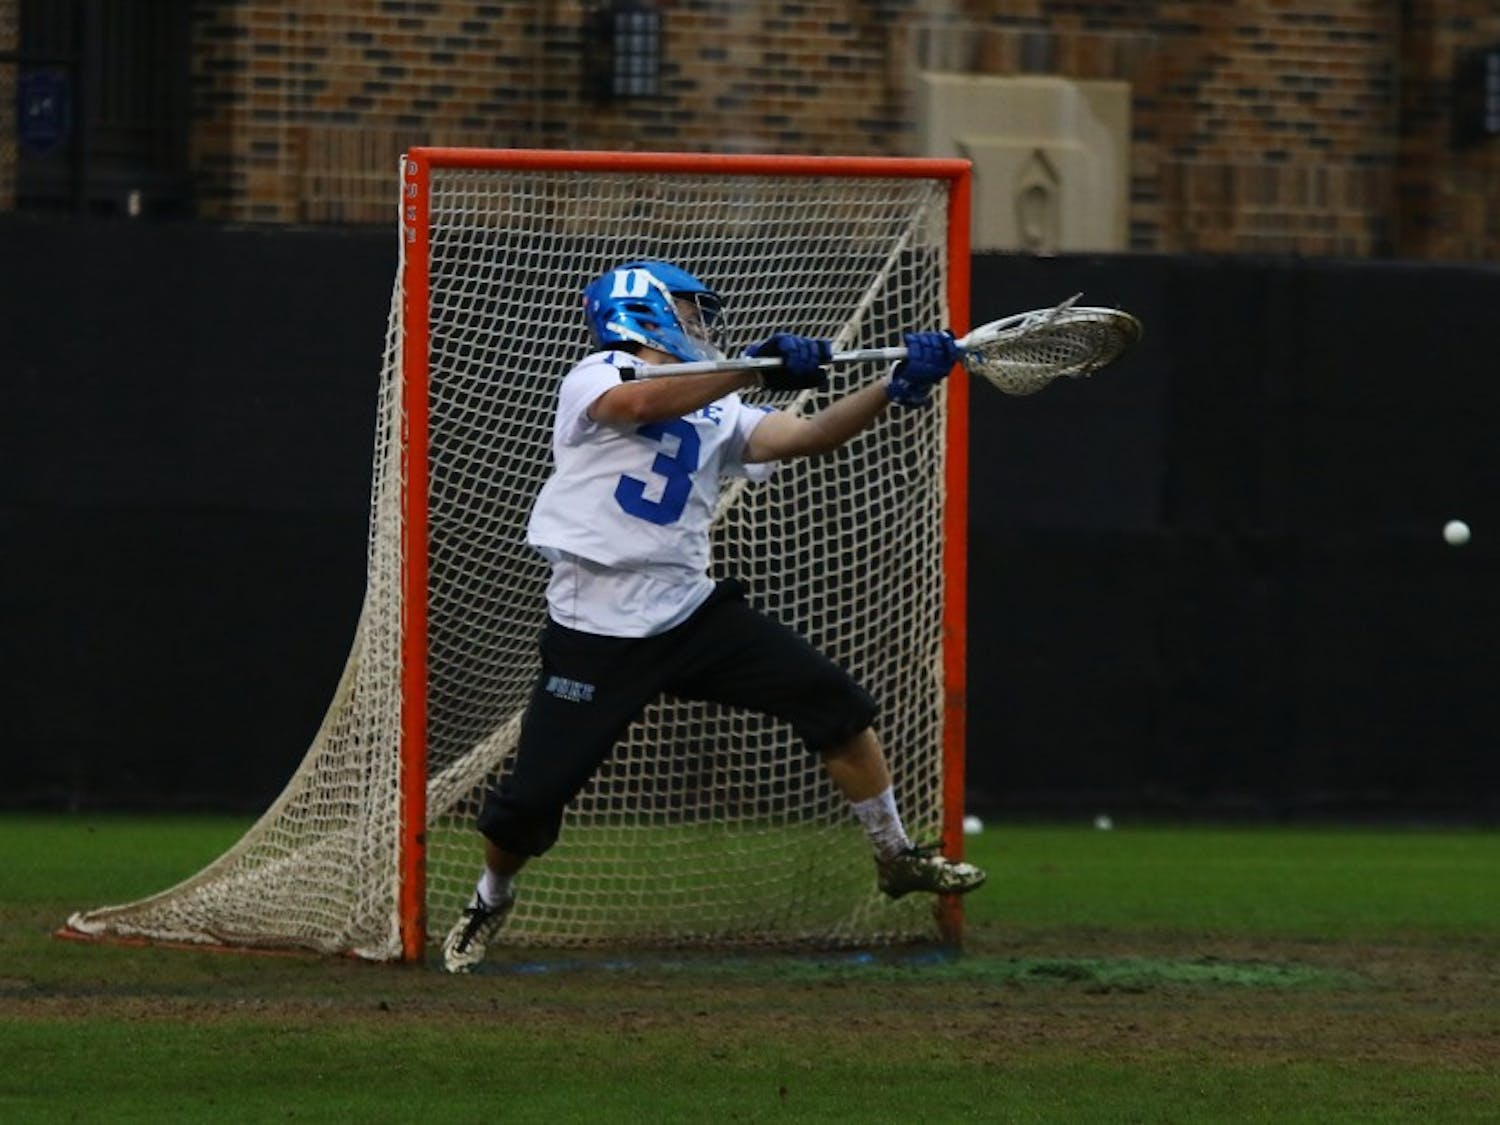 Goalkeeper Danny Fowler posted a season-high 17 saves Sunday in Duke's 14-8 loss to Syracuse.